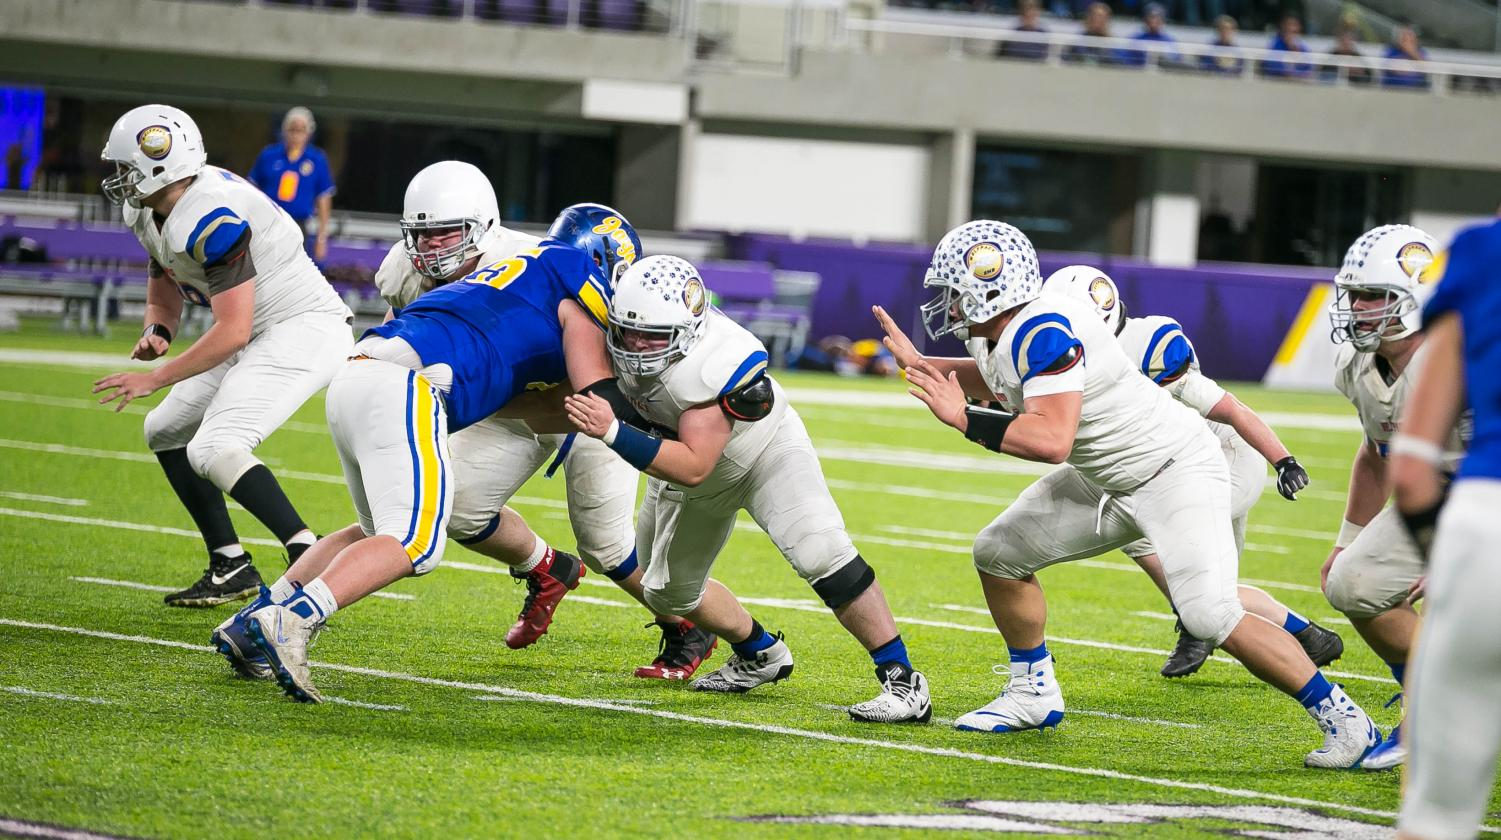 Senior Riley Tietel blocks a member of the opposing defensive line.